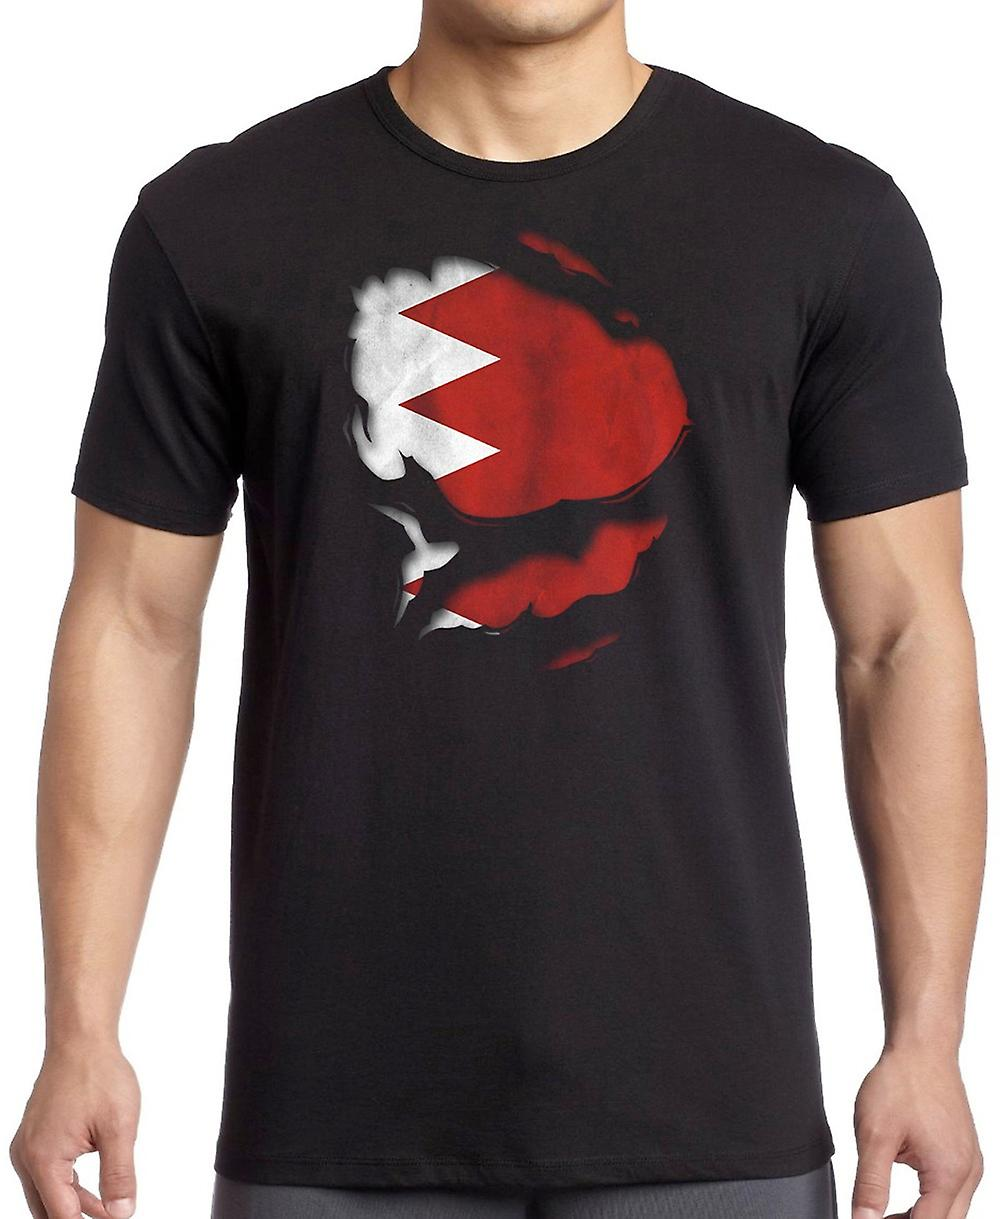 Bahrain Bahranian Ripped Effect Under Shirt Kids T Shirt